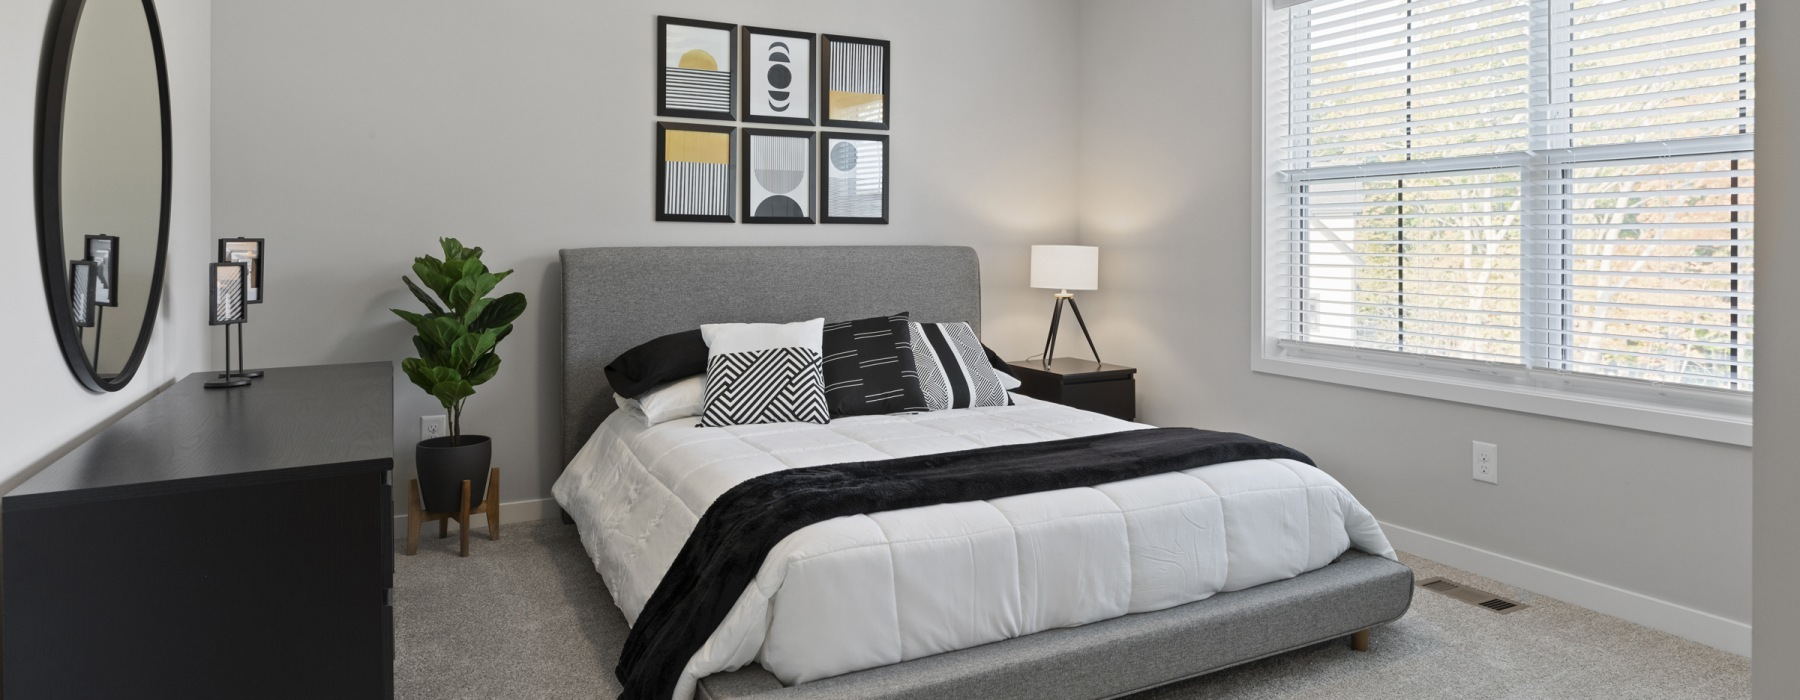 Well Lit Bedrooms With Plush Carpet At Beacon Ridge Single Family Rentals In Plymouth, MN